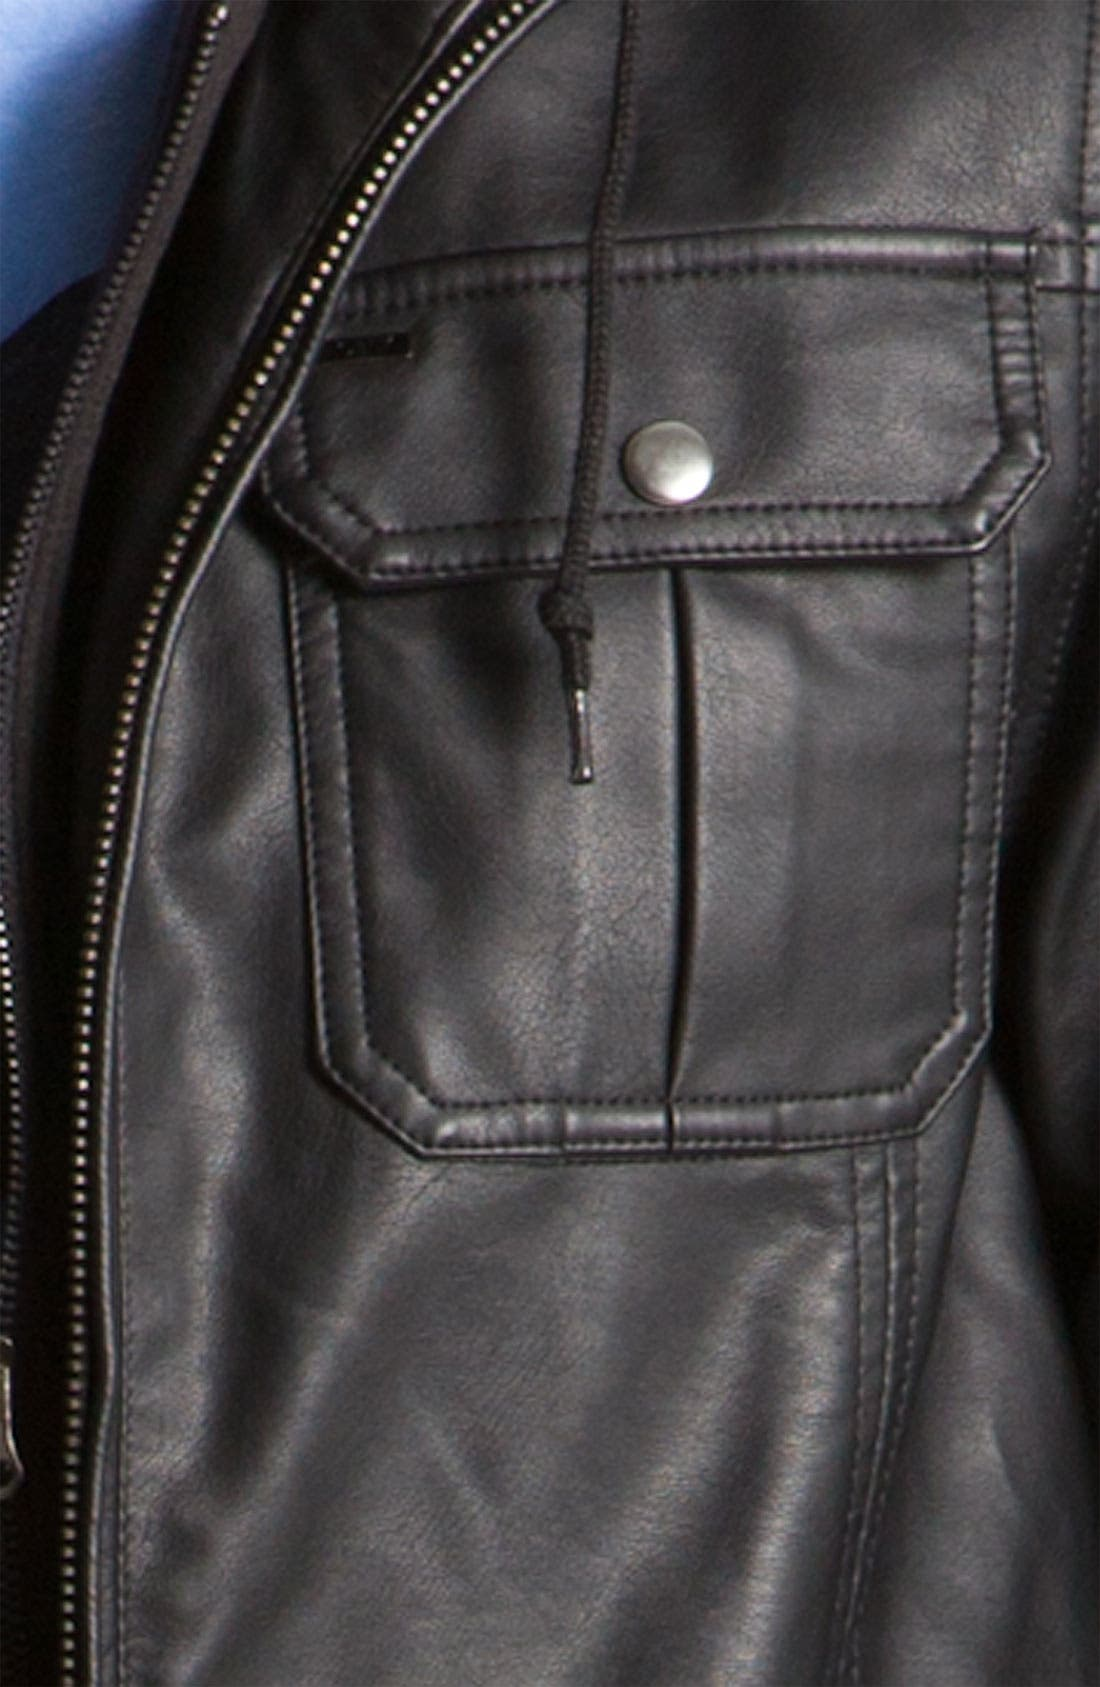 'Rapture' Trim Fit Layered Faux Leather Jacket,                             Alternate thumbnail 5, color,                             001